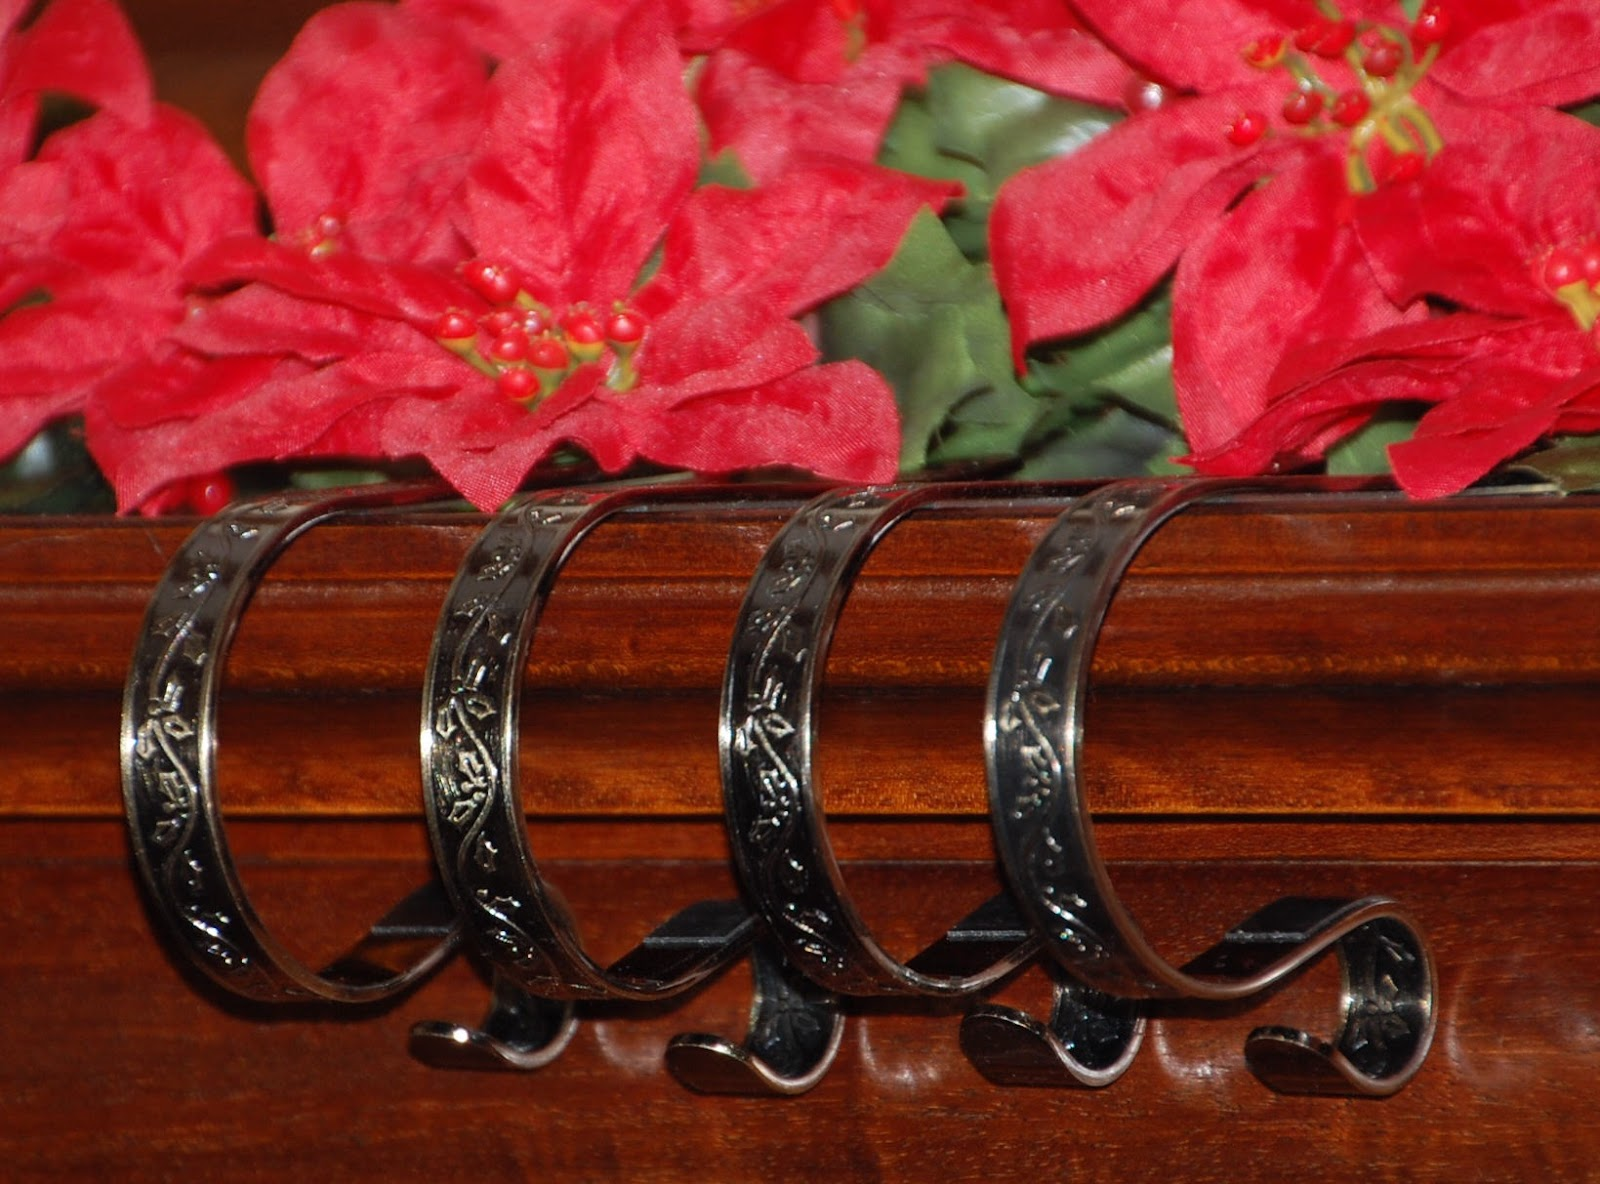 Royalegacy reviews and more mantle clip stocking holders for Brass stocking holders fireplace